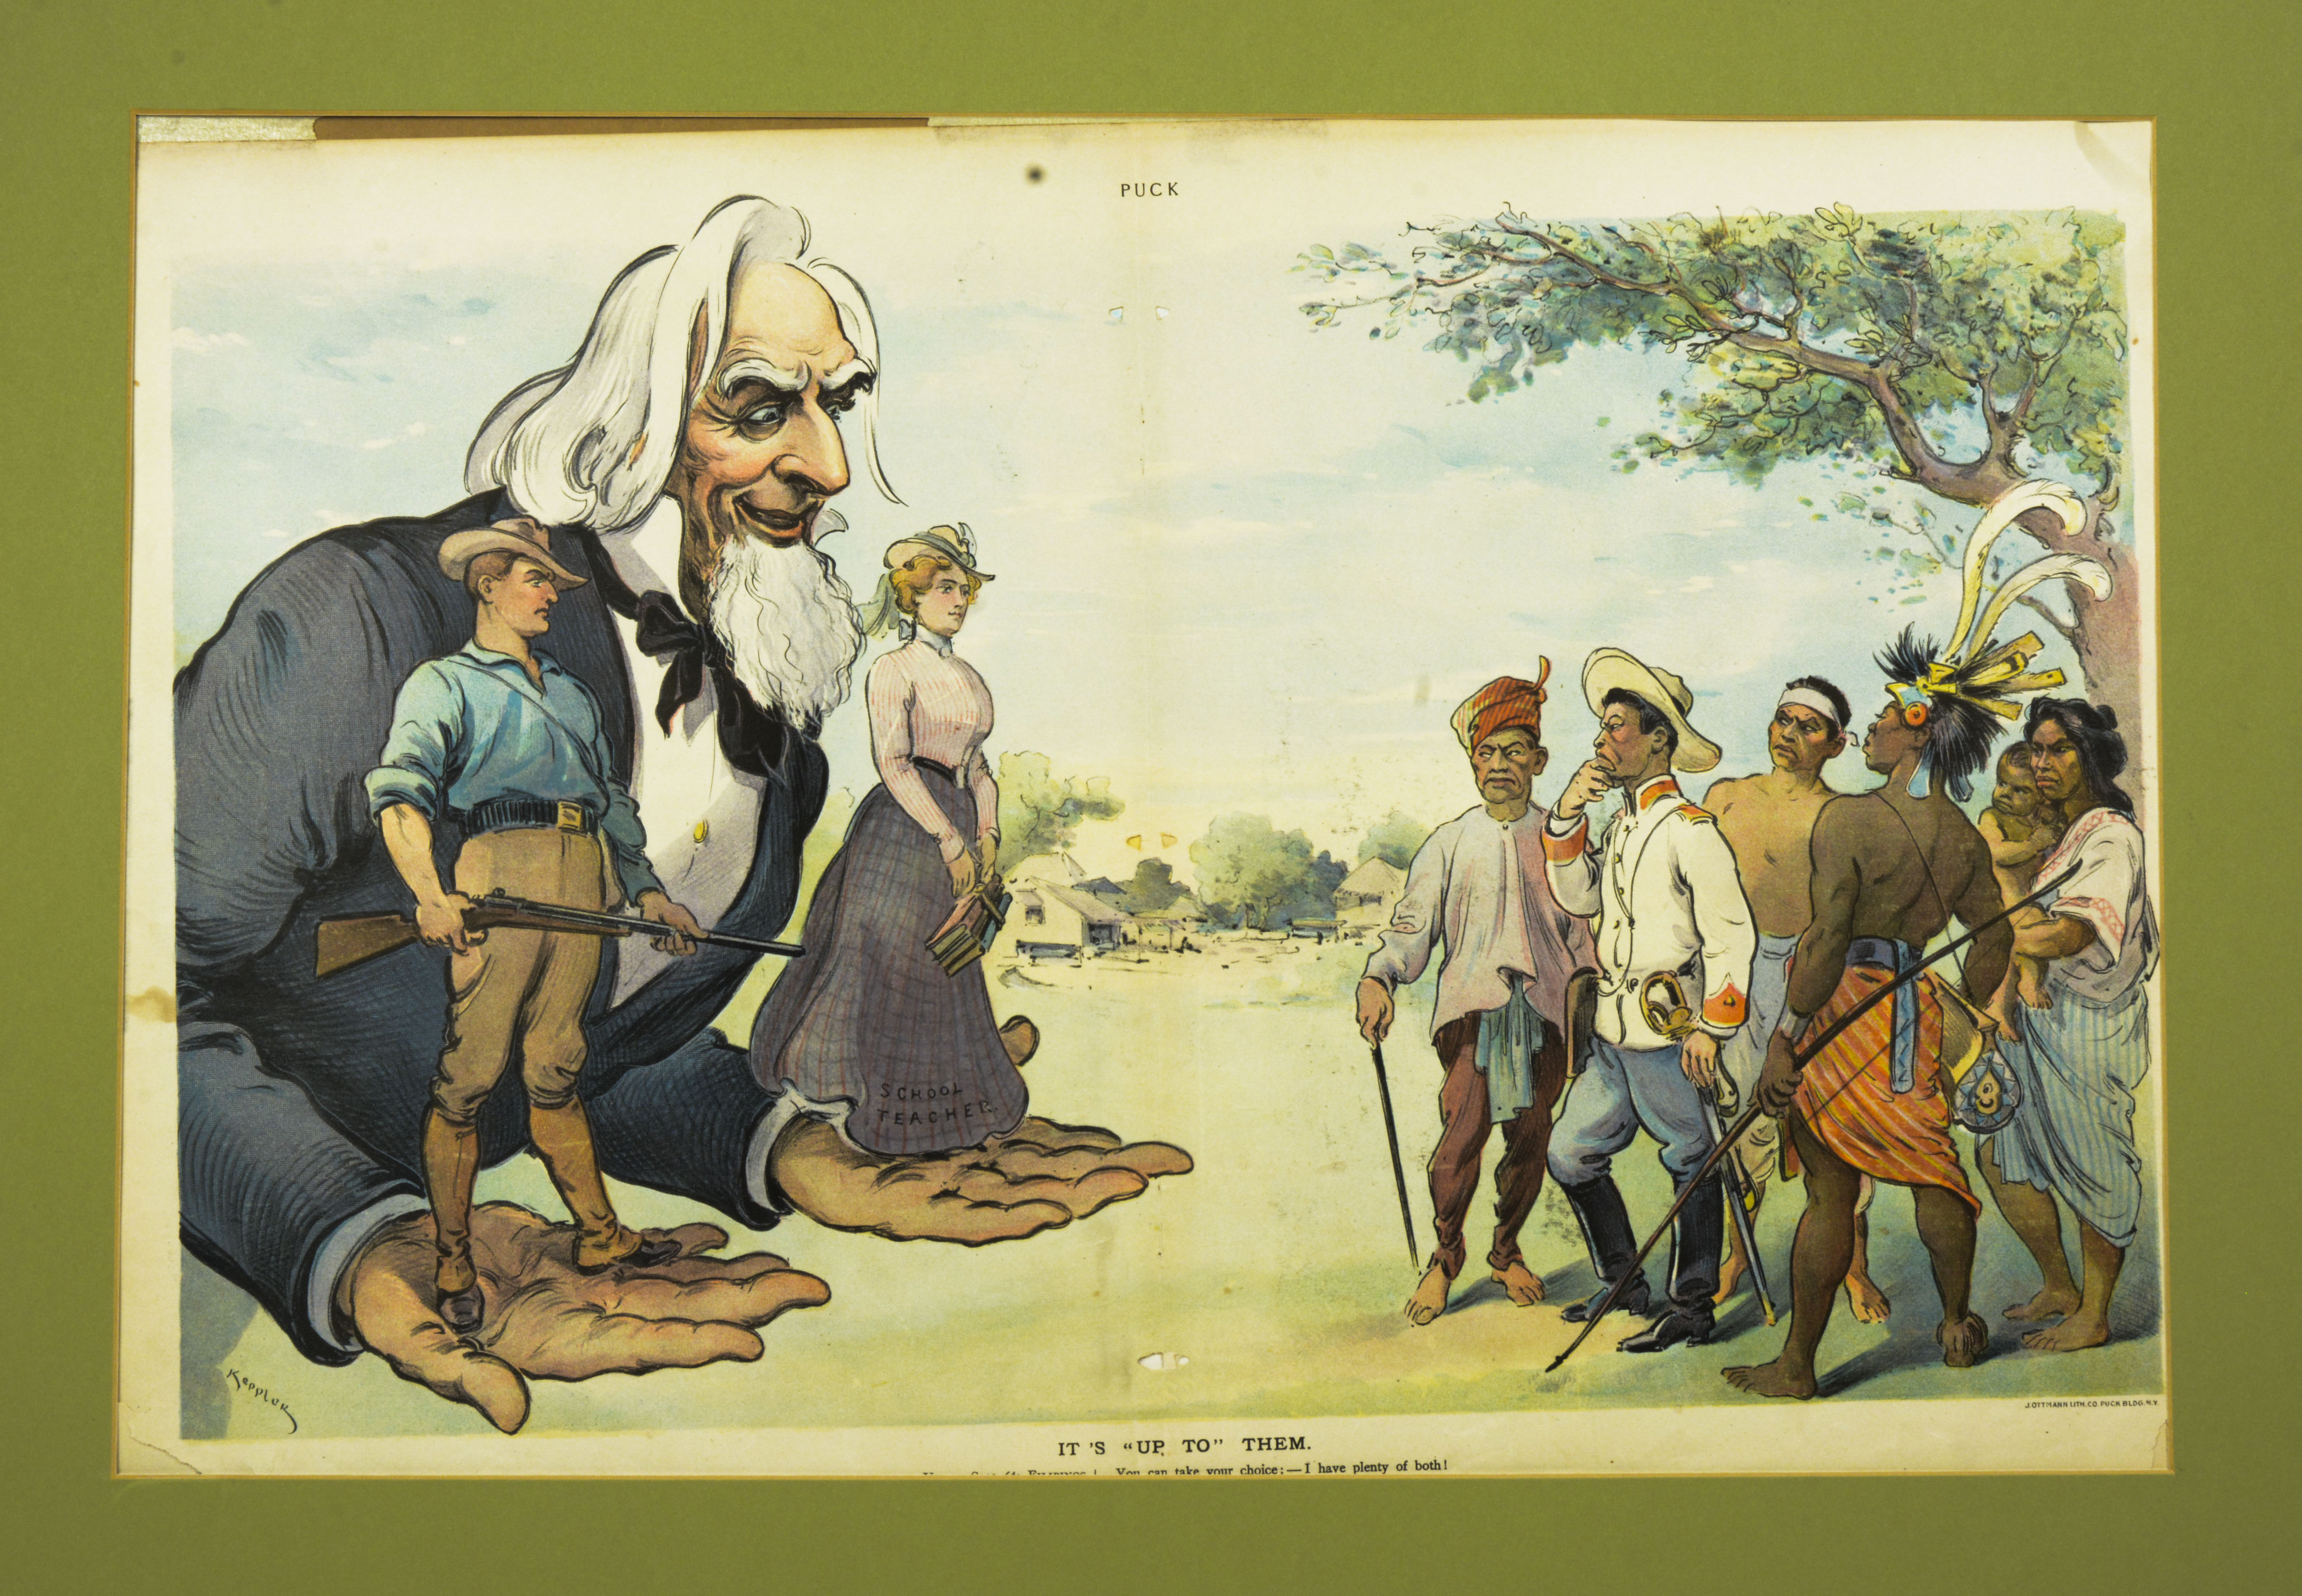 """Illustration owned by Paulla Santos Acquired in June 2017 from Odana Antiques and Fine Arts, Madison, WI  Bought while antiquing.  Illustration of Uncle Sam, white female teacher, white male soldier, Filipinos.  Language in English  Notes from Sarah Carlson, in discussion with Santos: Found in same antique store [as previous], different seller. Pulls Keppler print from New York, around 1898. Uncle Sam holding 2 options, offering teaches (civilizing, learning westerners) or man with a gun. Filipinos on other with reacting, representing different regions: Mindanao, Manila/Tagalog, lowlands, Cordilleras, Northerners. Walking through friend saw it, pointed it out, got excited, drew me. I study US/Philippine relations. Thought it was too expensive, negotiated through text to purchase for $150. Connections at UW-Madison helped make that connection. Kept wrapped in a closet away from my cat-hoping to frame it. Hung in apartment away from light. Studying transnational marriage between Philippines and US. Parents had a transnational arranged marriage by maternal group. Grandmother (Ran away at 16 to get married against parents wishes. Never legally married but had 8 children. Eventually grandmother left went to Singapore, worked in hotel, met new husband.) had 4 sons, 4 daughters, 2 daughters married US men, 3rd daughter married an American too but wasn't arranged. Only learned parents marriage was arranged until recently. Wanted to know more about imperialism, US/Philippines relationship, penpals/""""mail order"""", US servicemen/entertainment workers, bride schools. How the US sponsored bride schools in the USA haven't found much written about it. Learning Tagalog - mom's first language. Last name is Santos, but pronounced English Way, dad is American. Grandfather's(adoptive parents are Filipino, 1930's huge anti-Filipino sentiment, how did they adopt a white boy? Family lore of kidnapping.   Any views, findings, conclusions, or recommendations expressed in this story do not nec"""